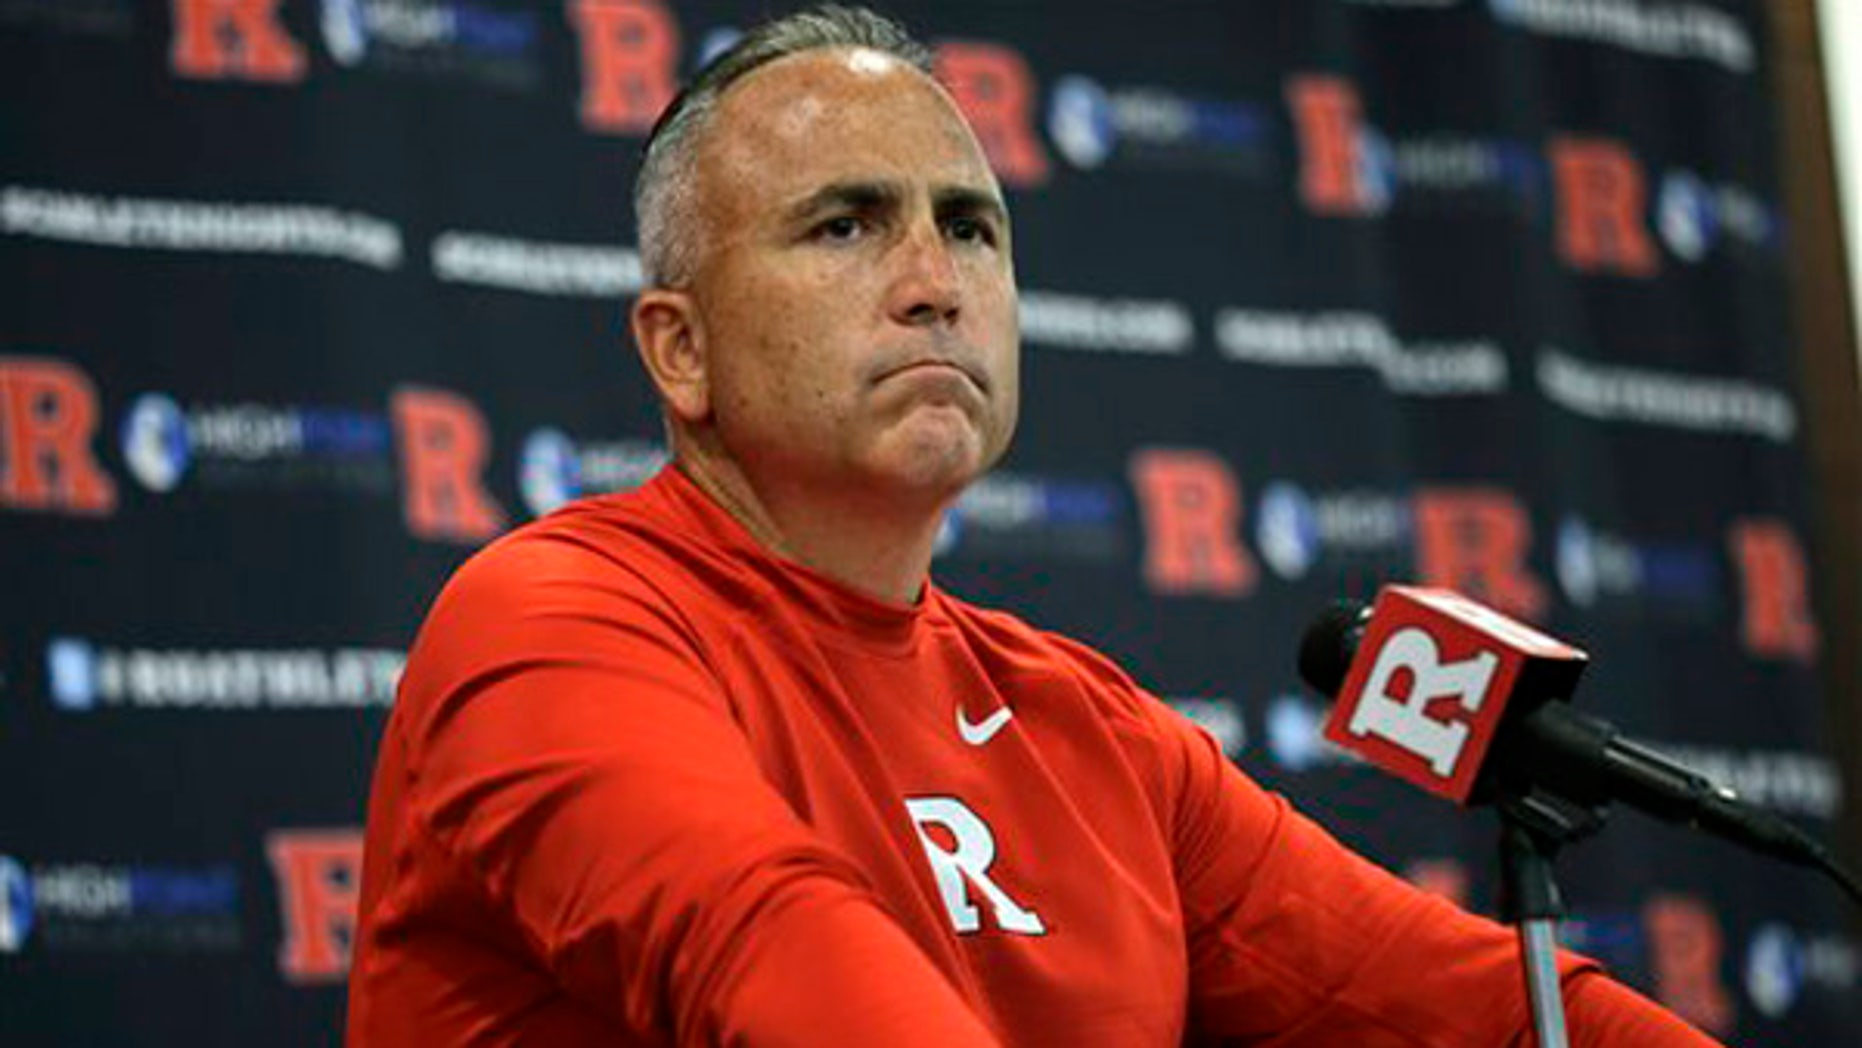 Sept. 5, 2015:  Rutgers head coach Kyle Flood listens to a question as he addresses the media after his team defeated Norfolk State, 63-13 in an NCAA college football game in Piscataway, N.J.